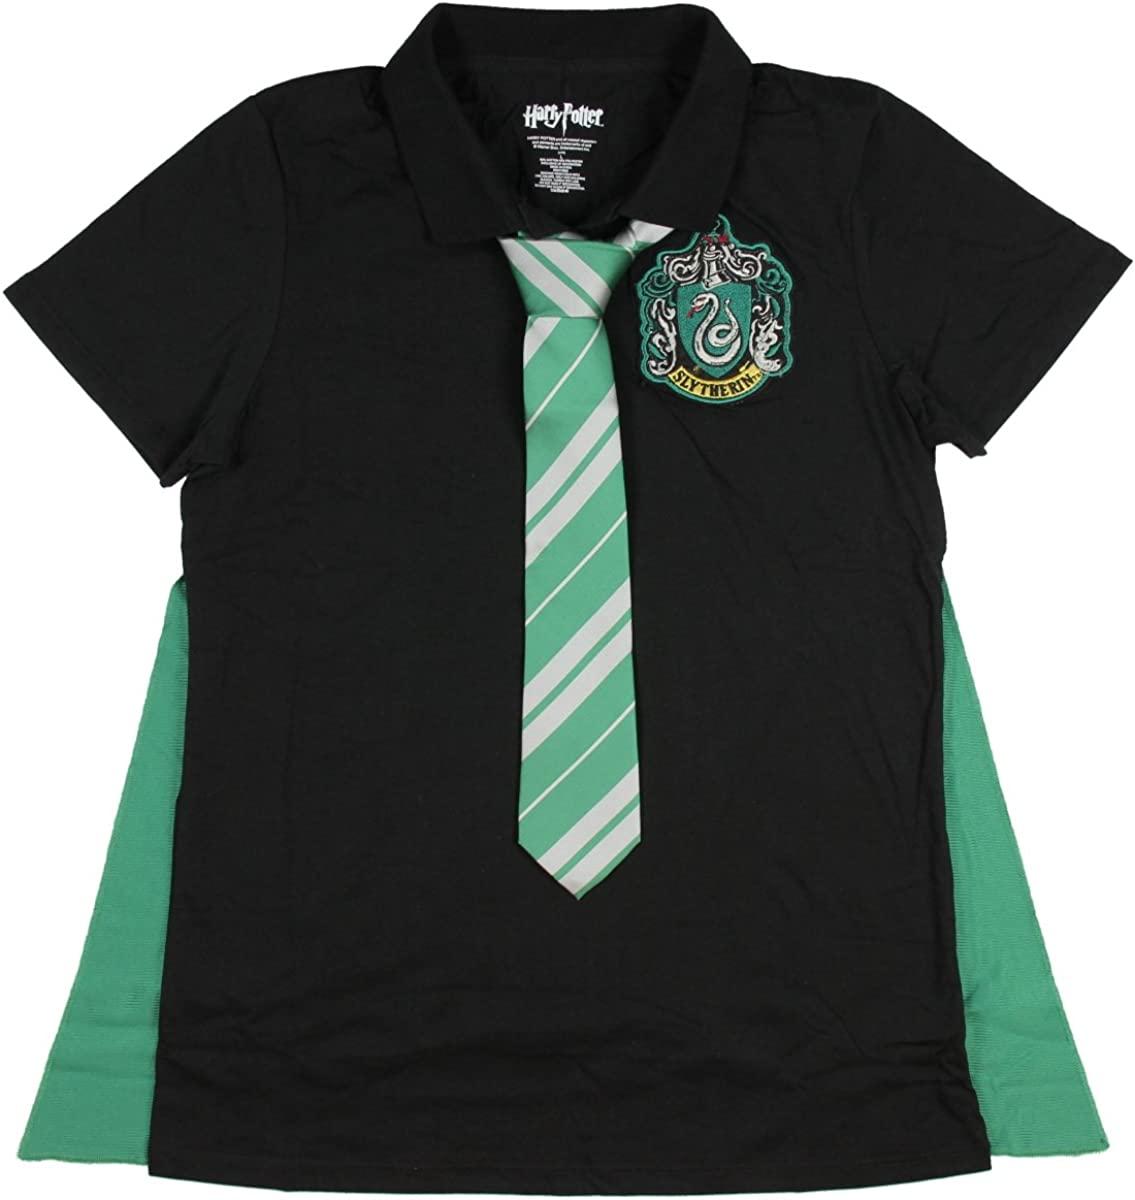 Amazon Com Harry Potter Juniors Slytherin Caped Polo Shirt With Tie Clothing